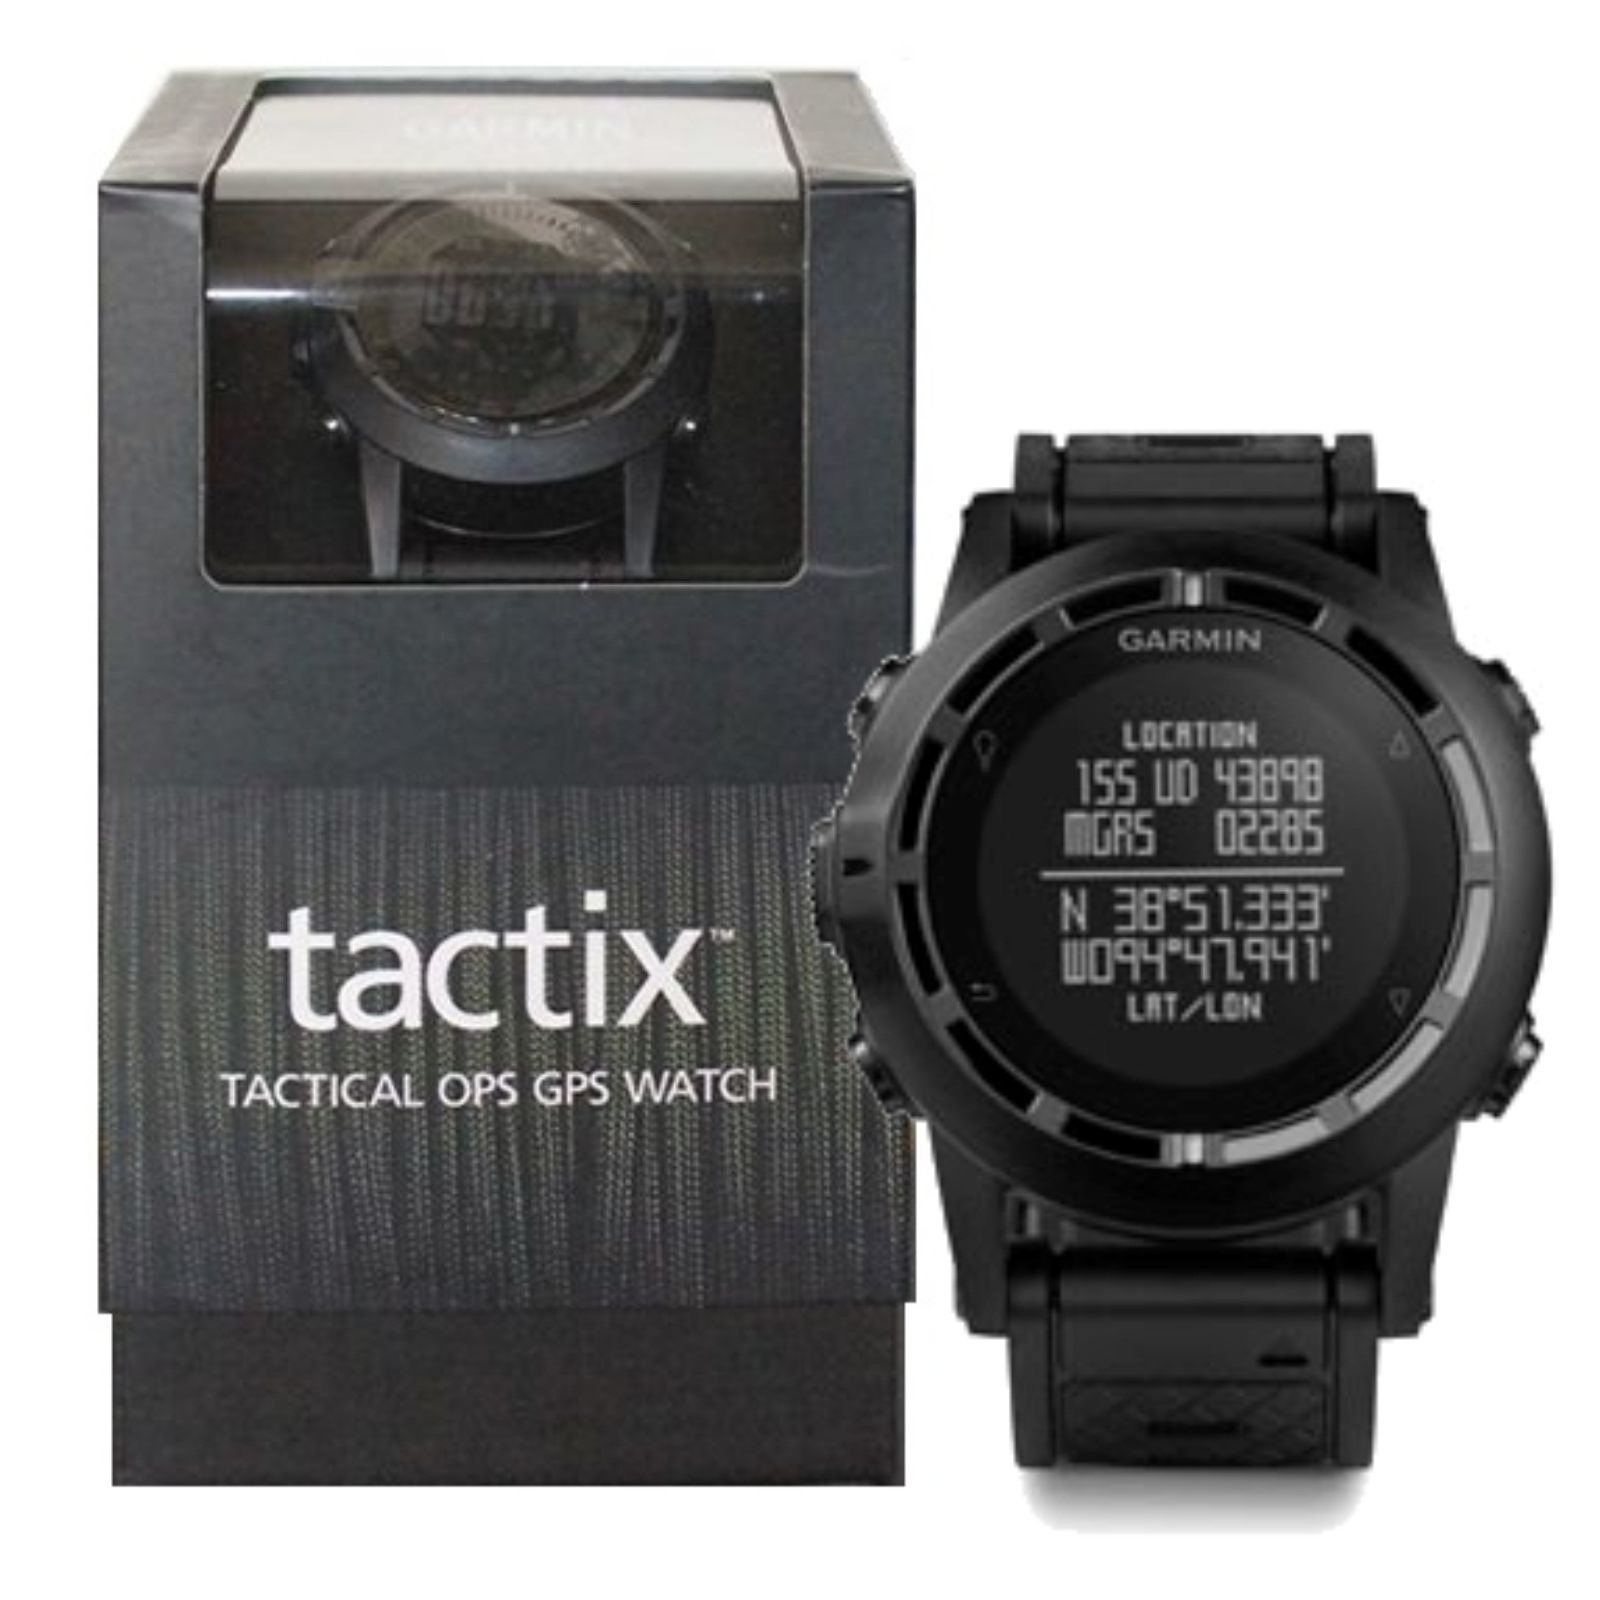 Garmin Tactix Tactical OPS GPS Navigator ABC Outdoor Sports Skydiving Watch NEW